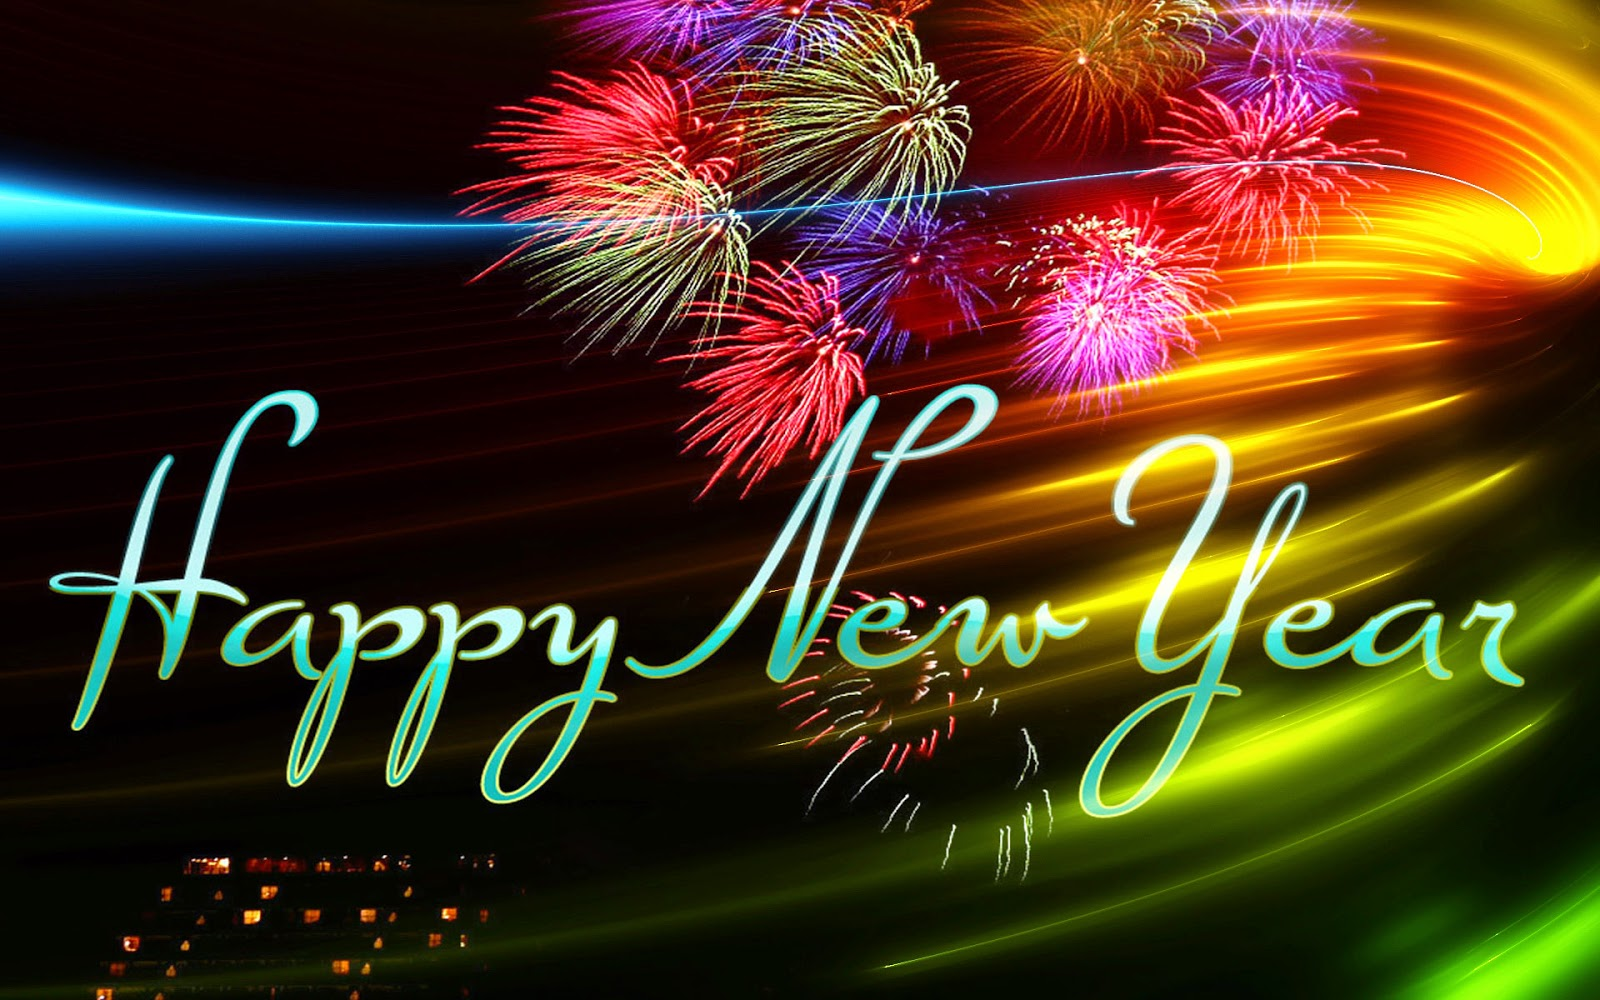 Download Free Happy New Year 2016 Images